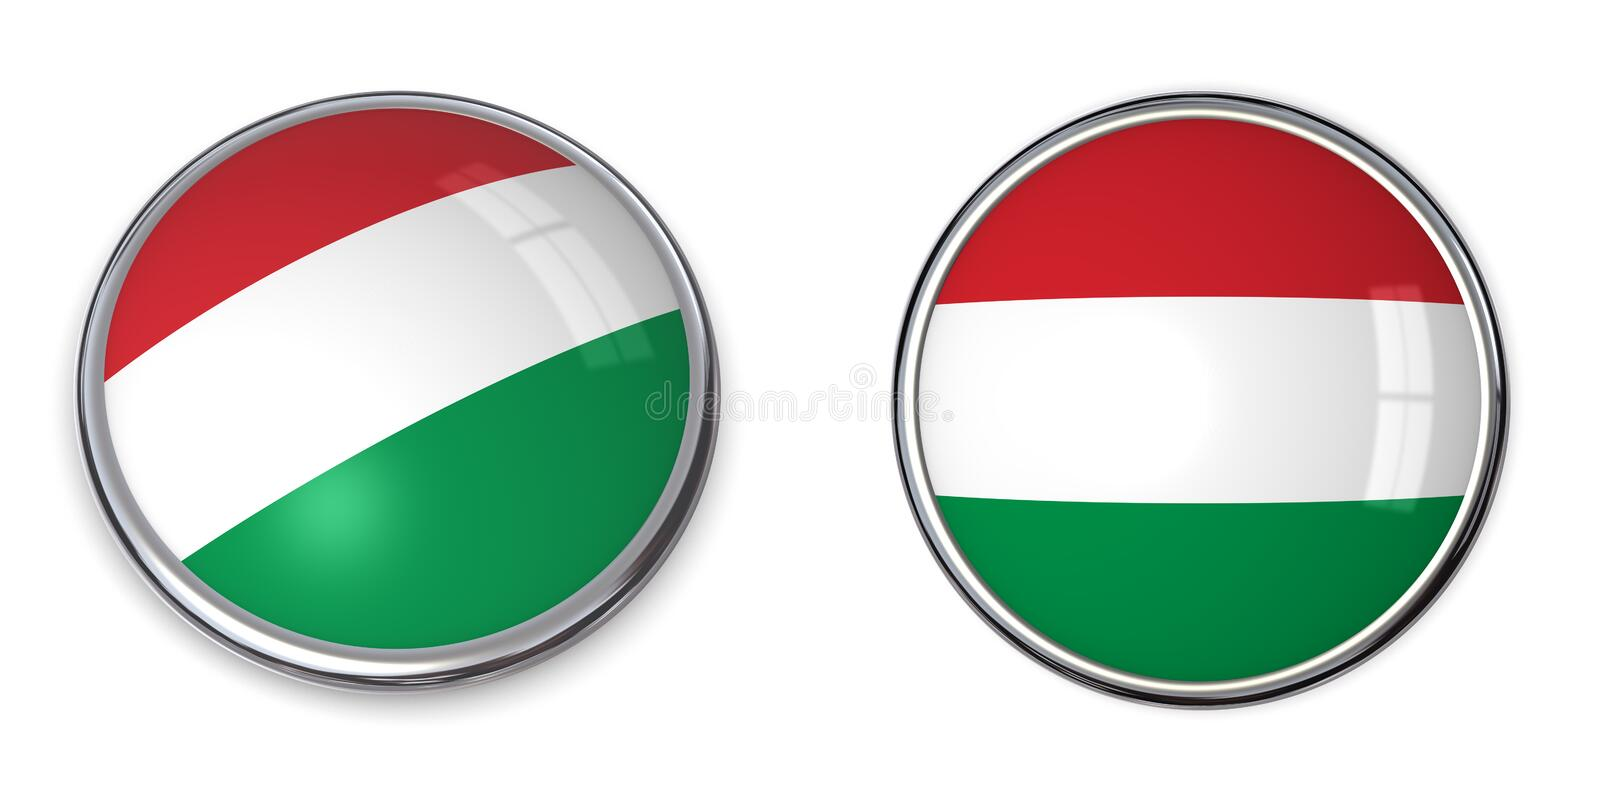 banerknapp hungary vektor illustrationer